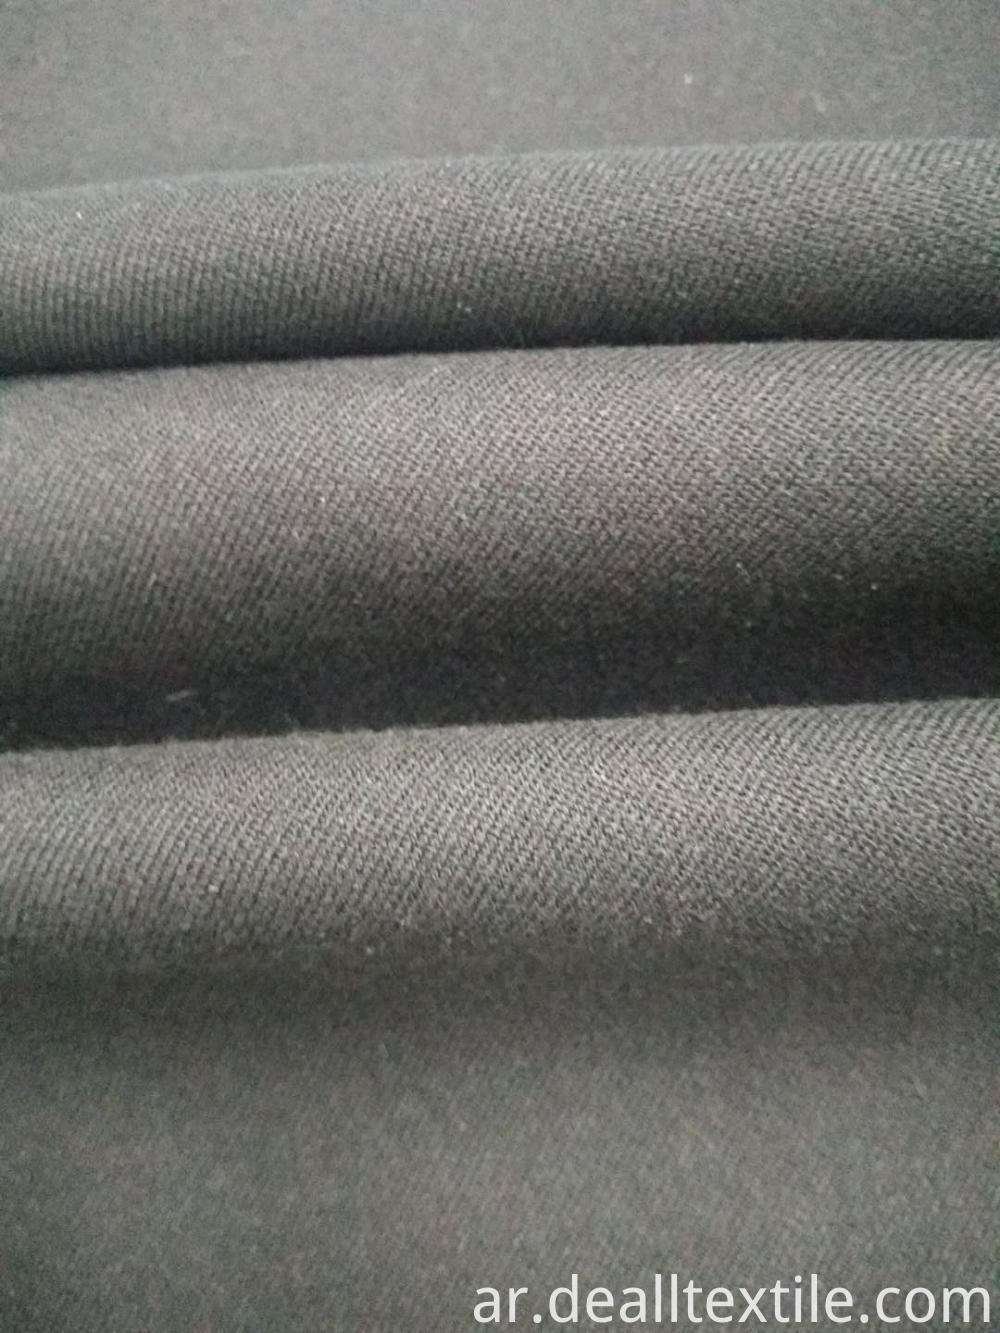 2020 Suiting TR fabric